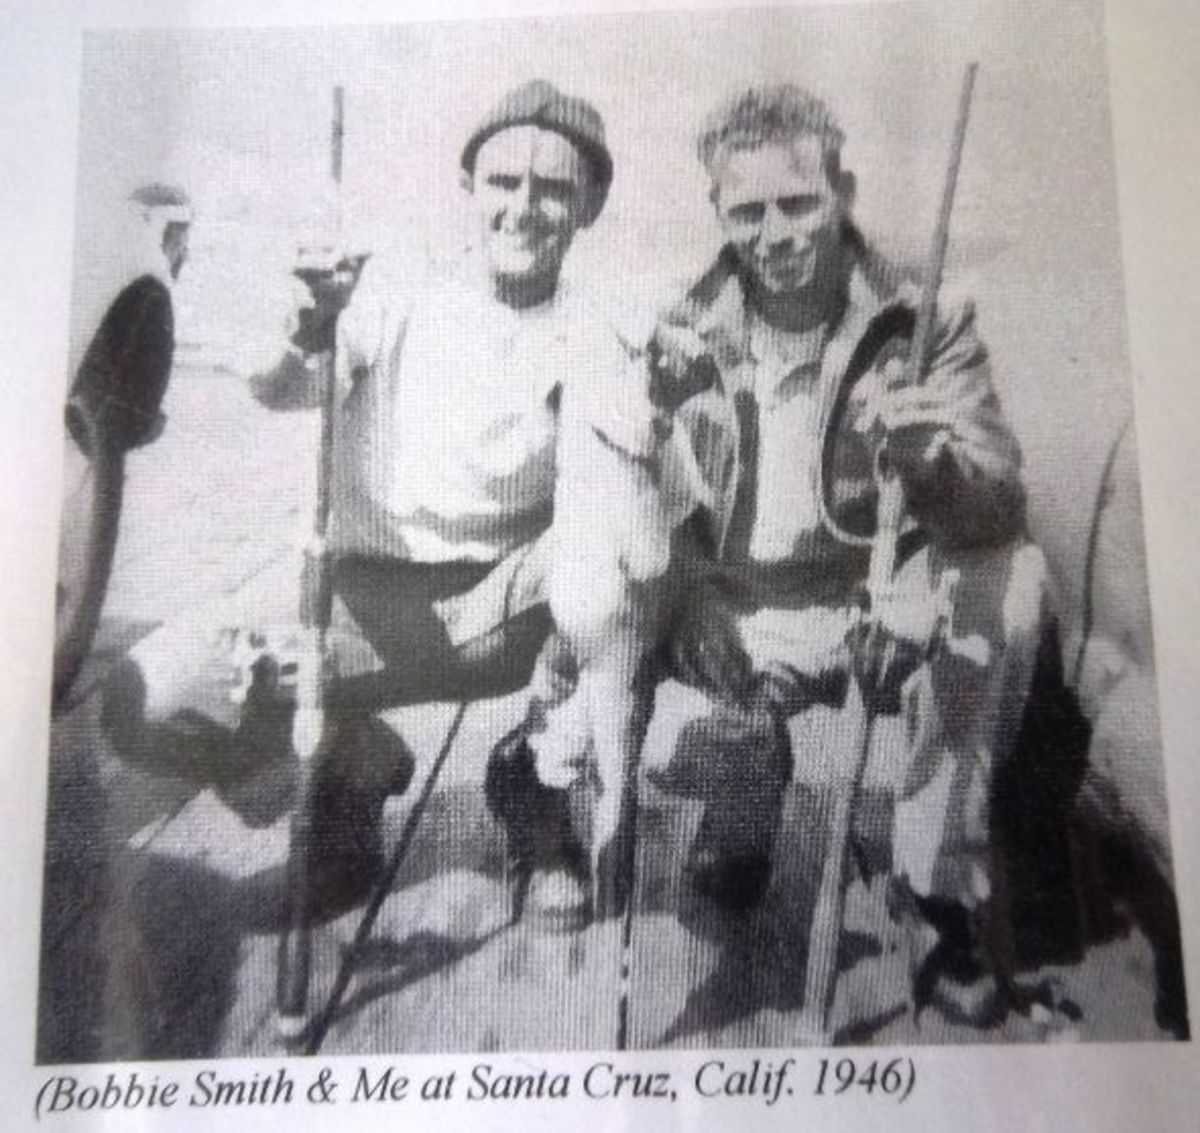 Bobbie Smith and Me at Santa Cruz, Calif. 1946